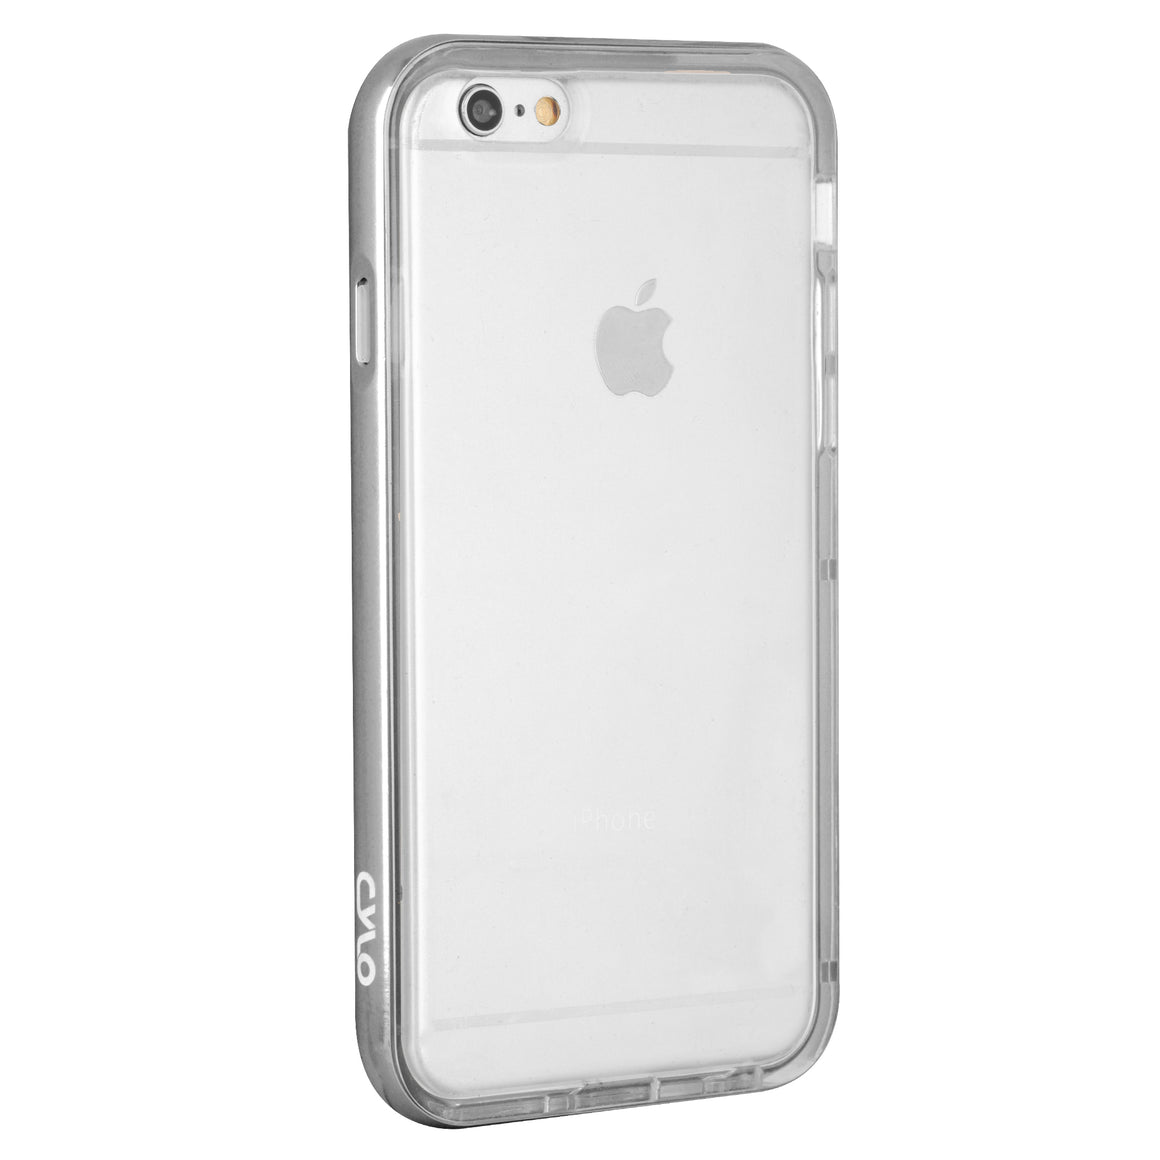 Gunmetal Metallic Drop-Shield iPhone Case